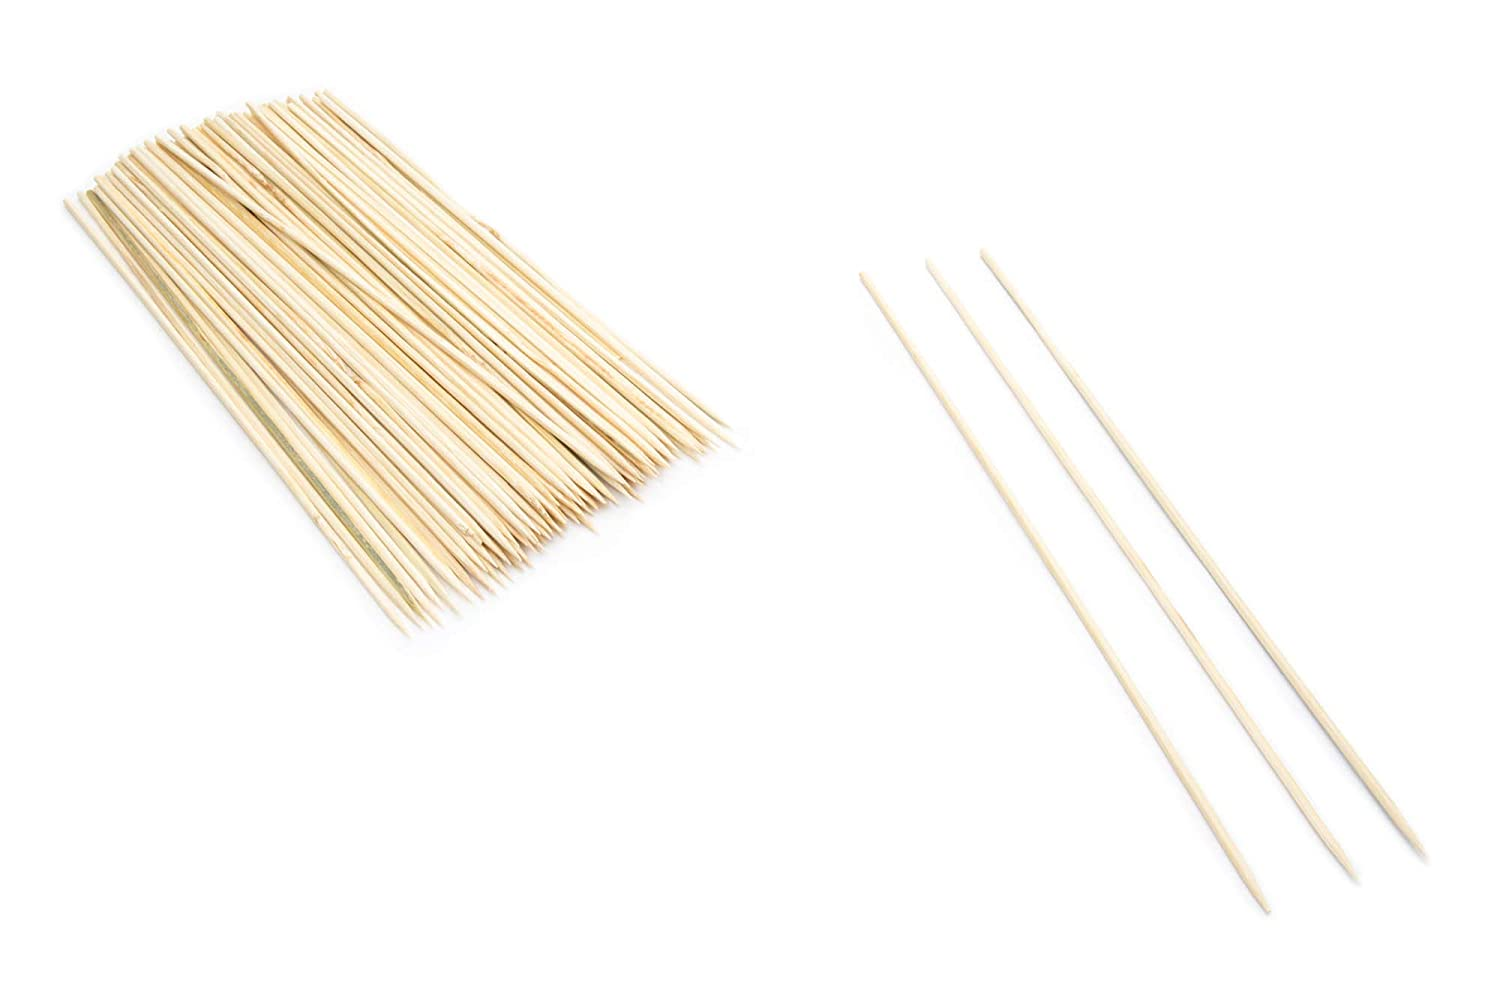 A more eco-friendly and practical alternative to plastic skewers satay vegetables Fox Run Bamboo 10 Skewers Pack of 200 fruit for grilling meat